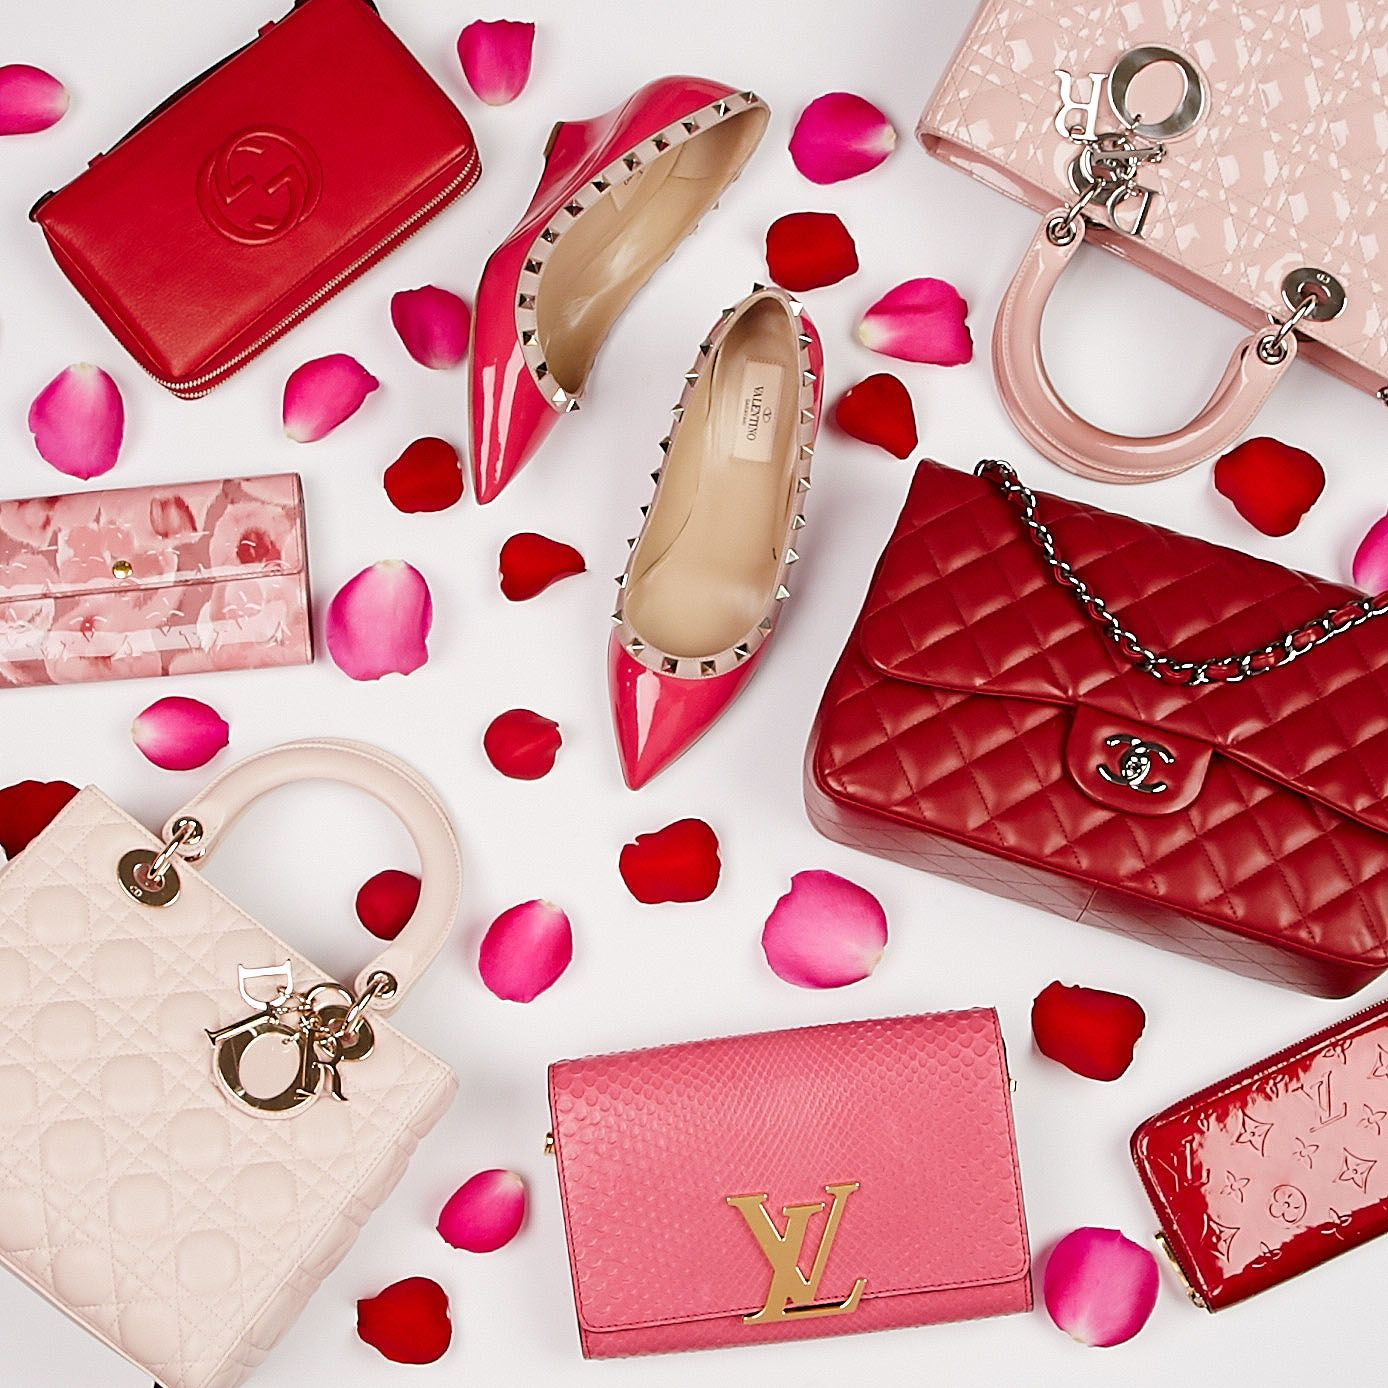 What do you want for Valentine's Day? #Handbags #fashion #style ...